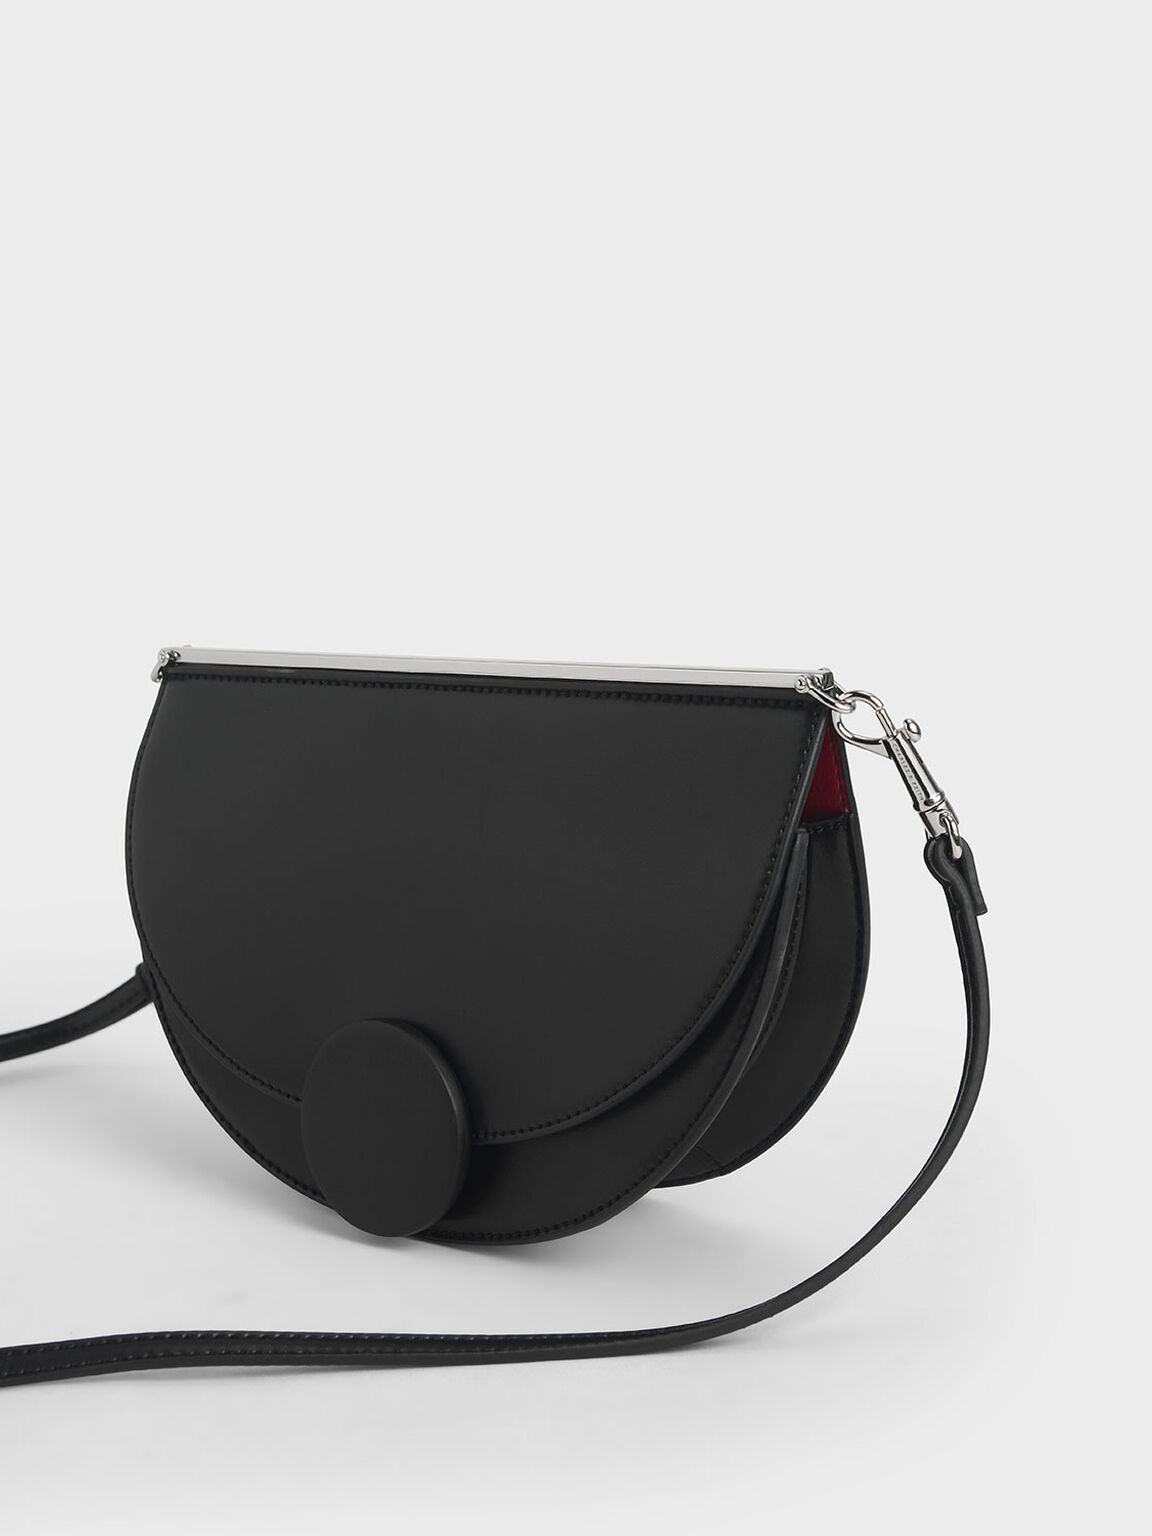 Half Moon Clutch, Black, hi-res